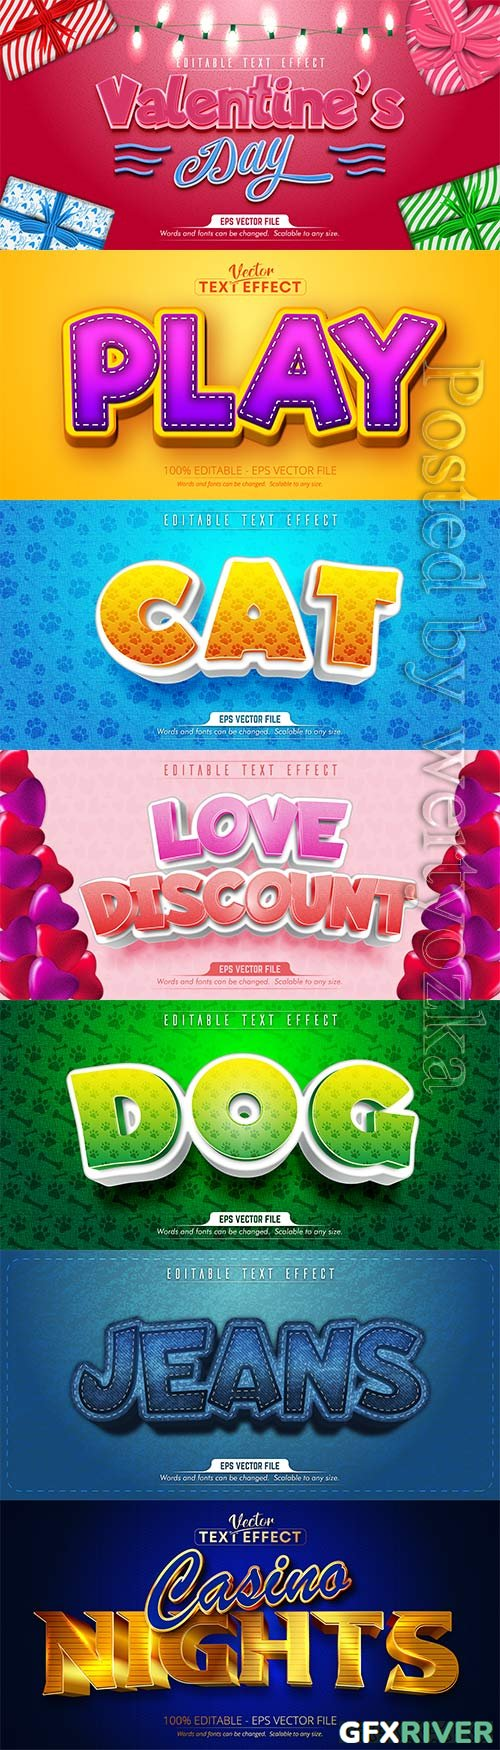 3d editable text style effect vector vol 212